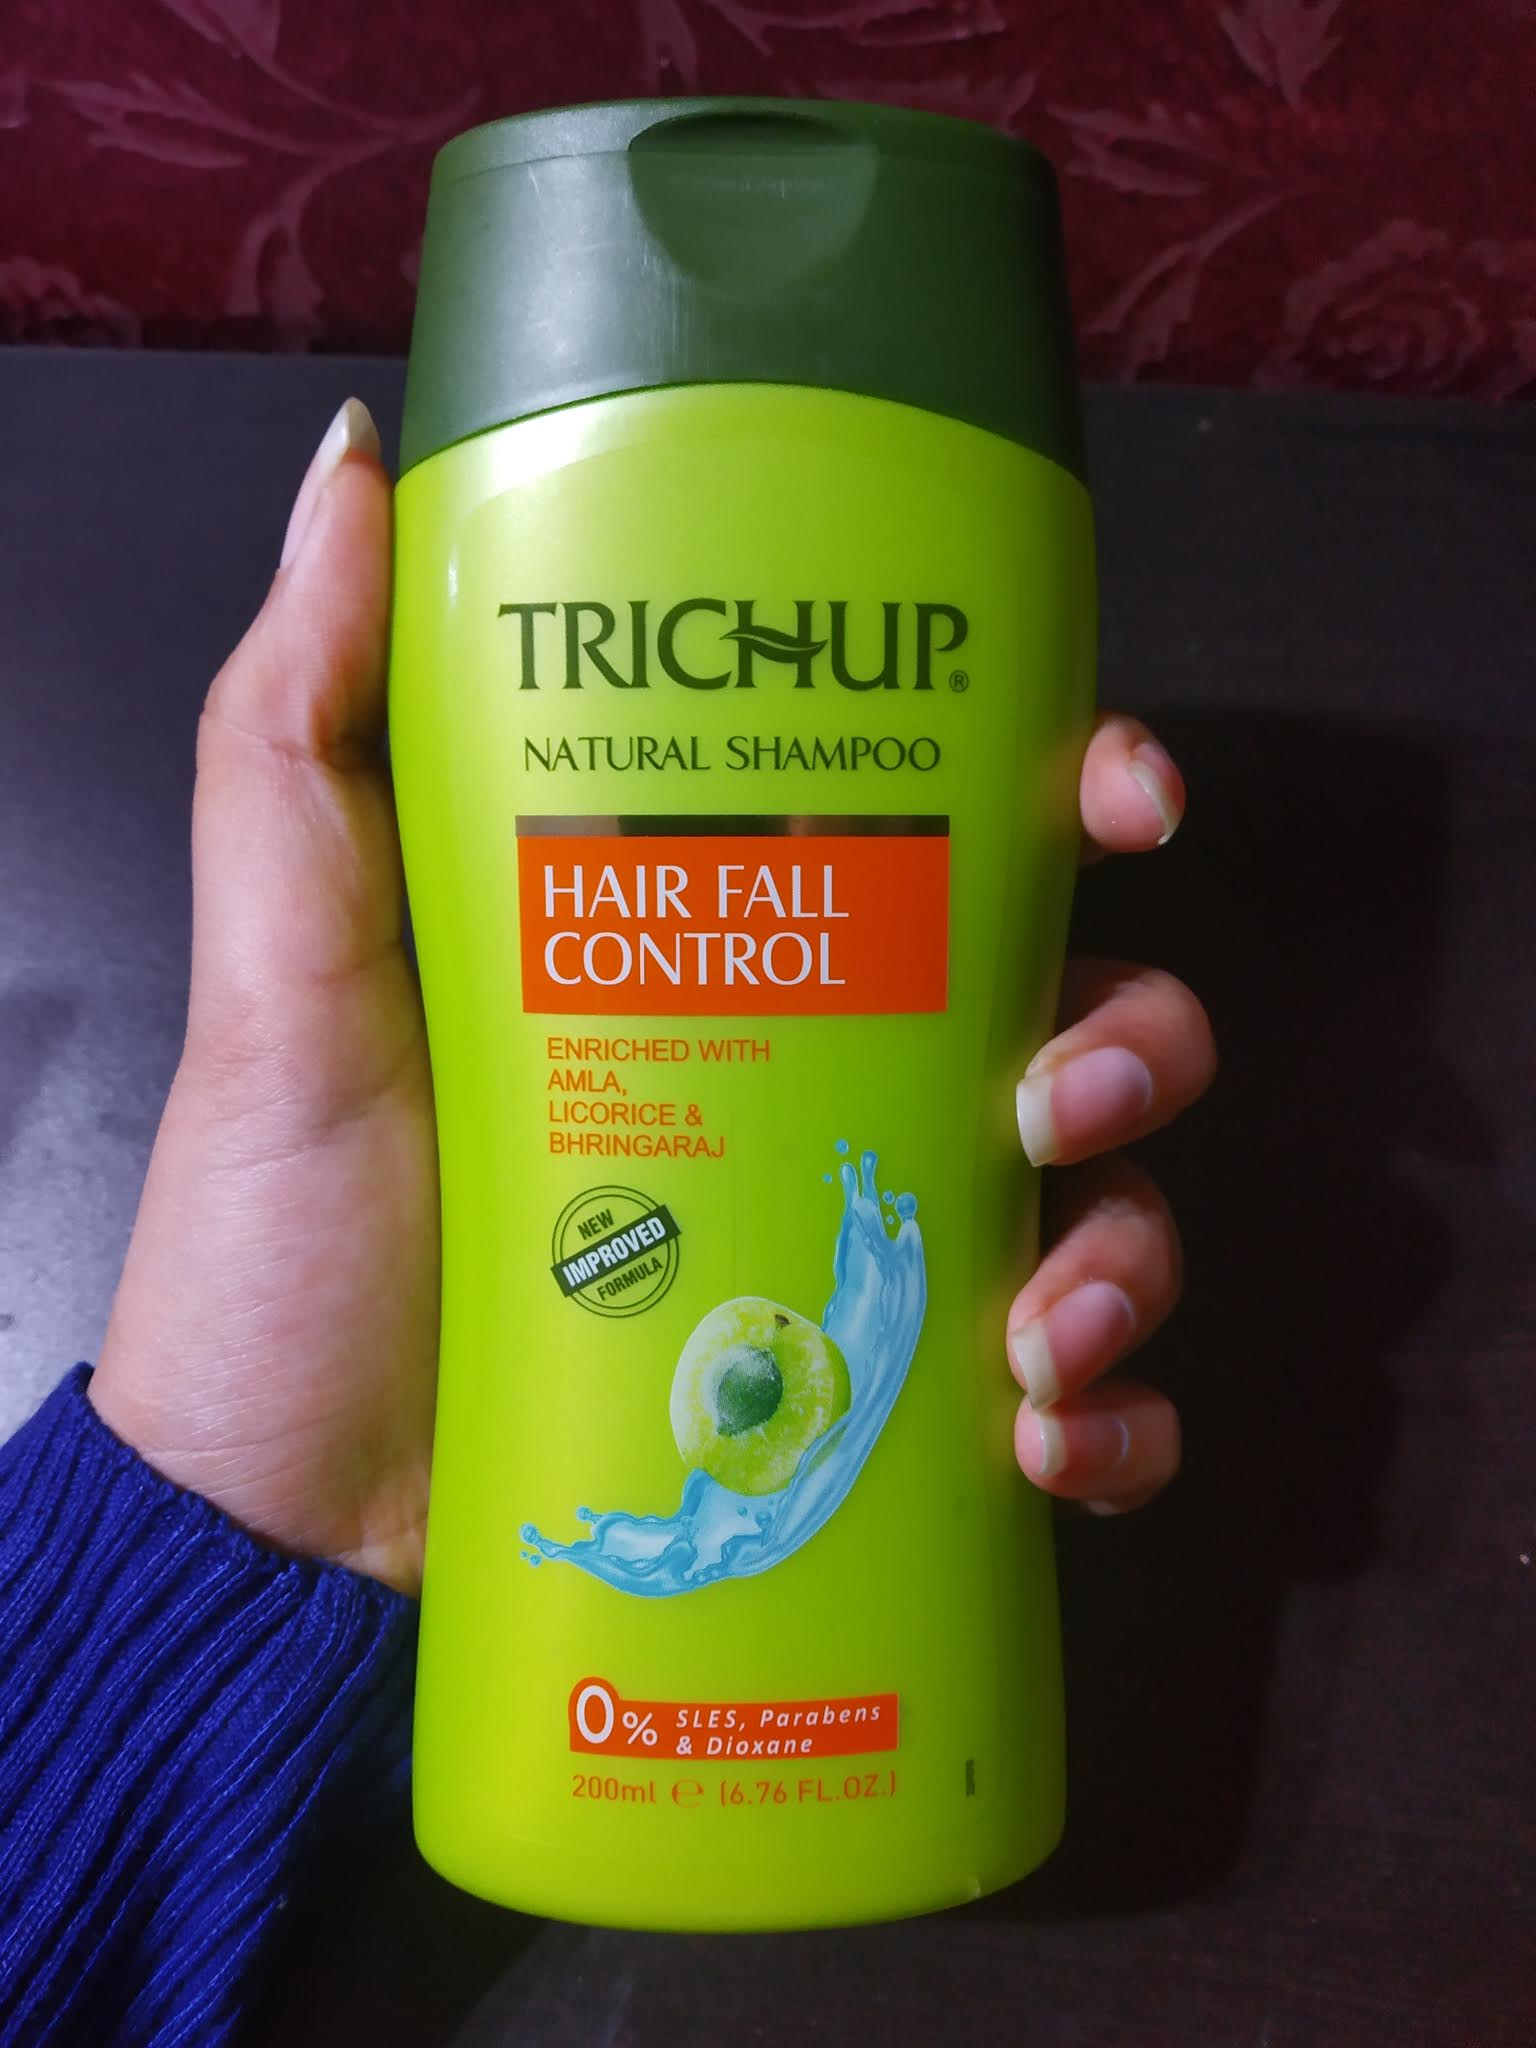 Trichup Hair Fall Control Shampoo-Best shampoo for hairfall control-By nishthask